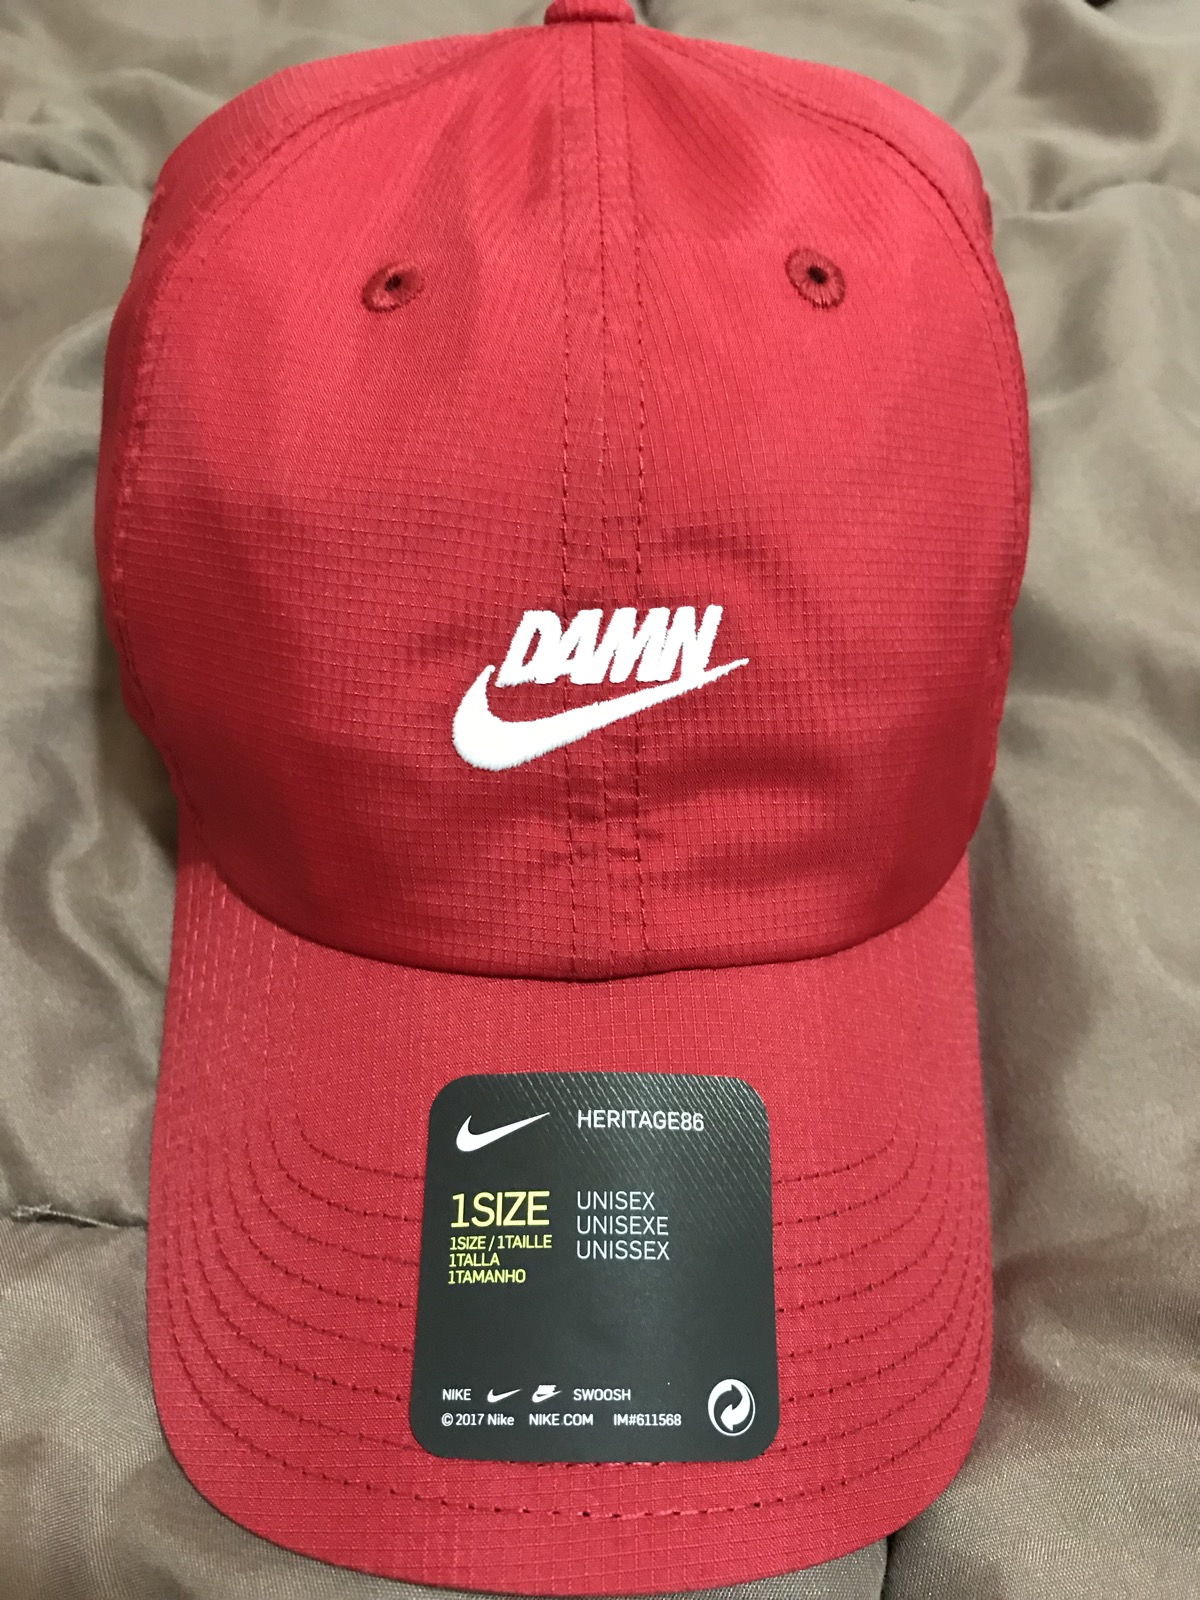 Nike Nike x TDE Championship Tour Pop Up DAMN Hat Red Kendrick Lamar Size  one size - Hats for Sale - Grailed 1082116df1d8